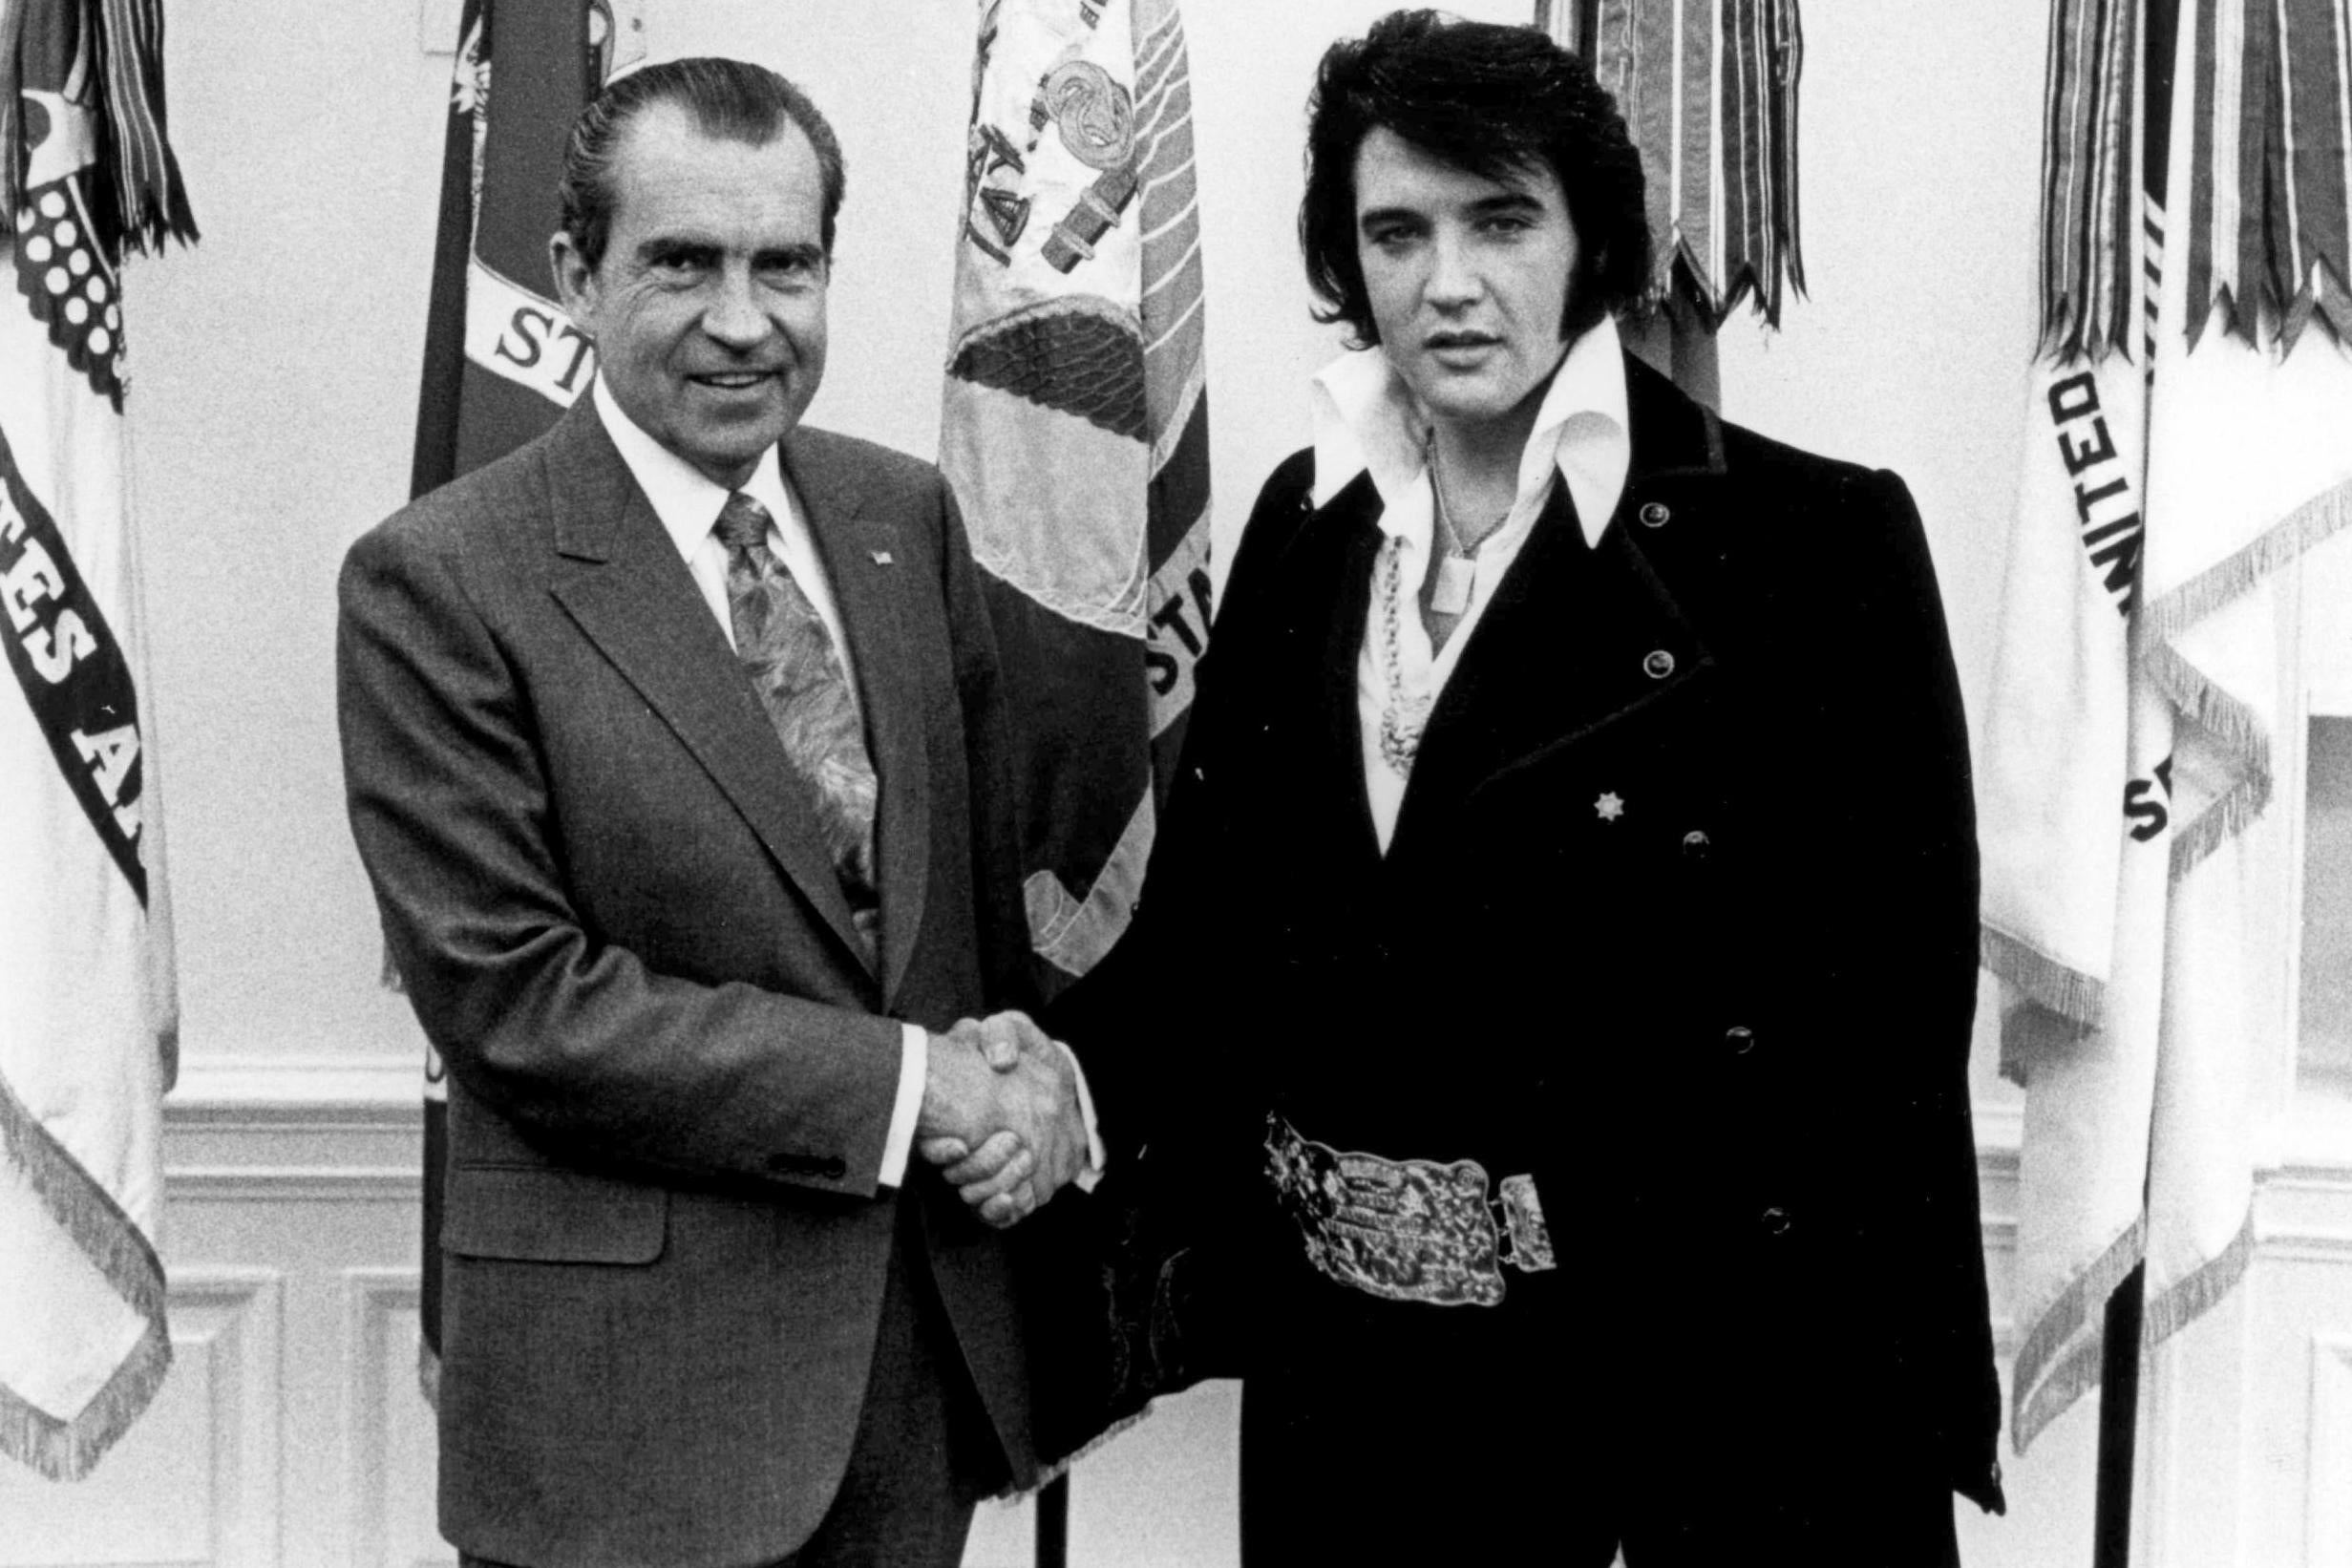 Elvis Presley and the Medal of Freedom: How would the King have felt about this honour from Trump?